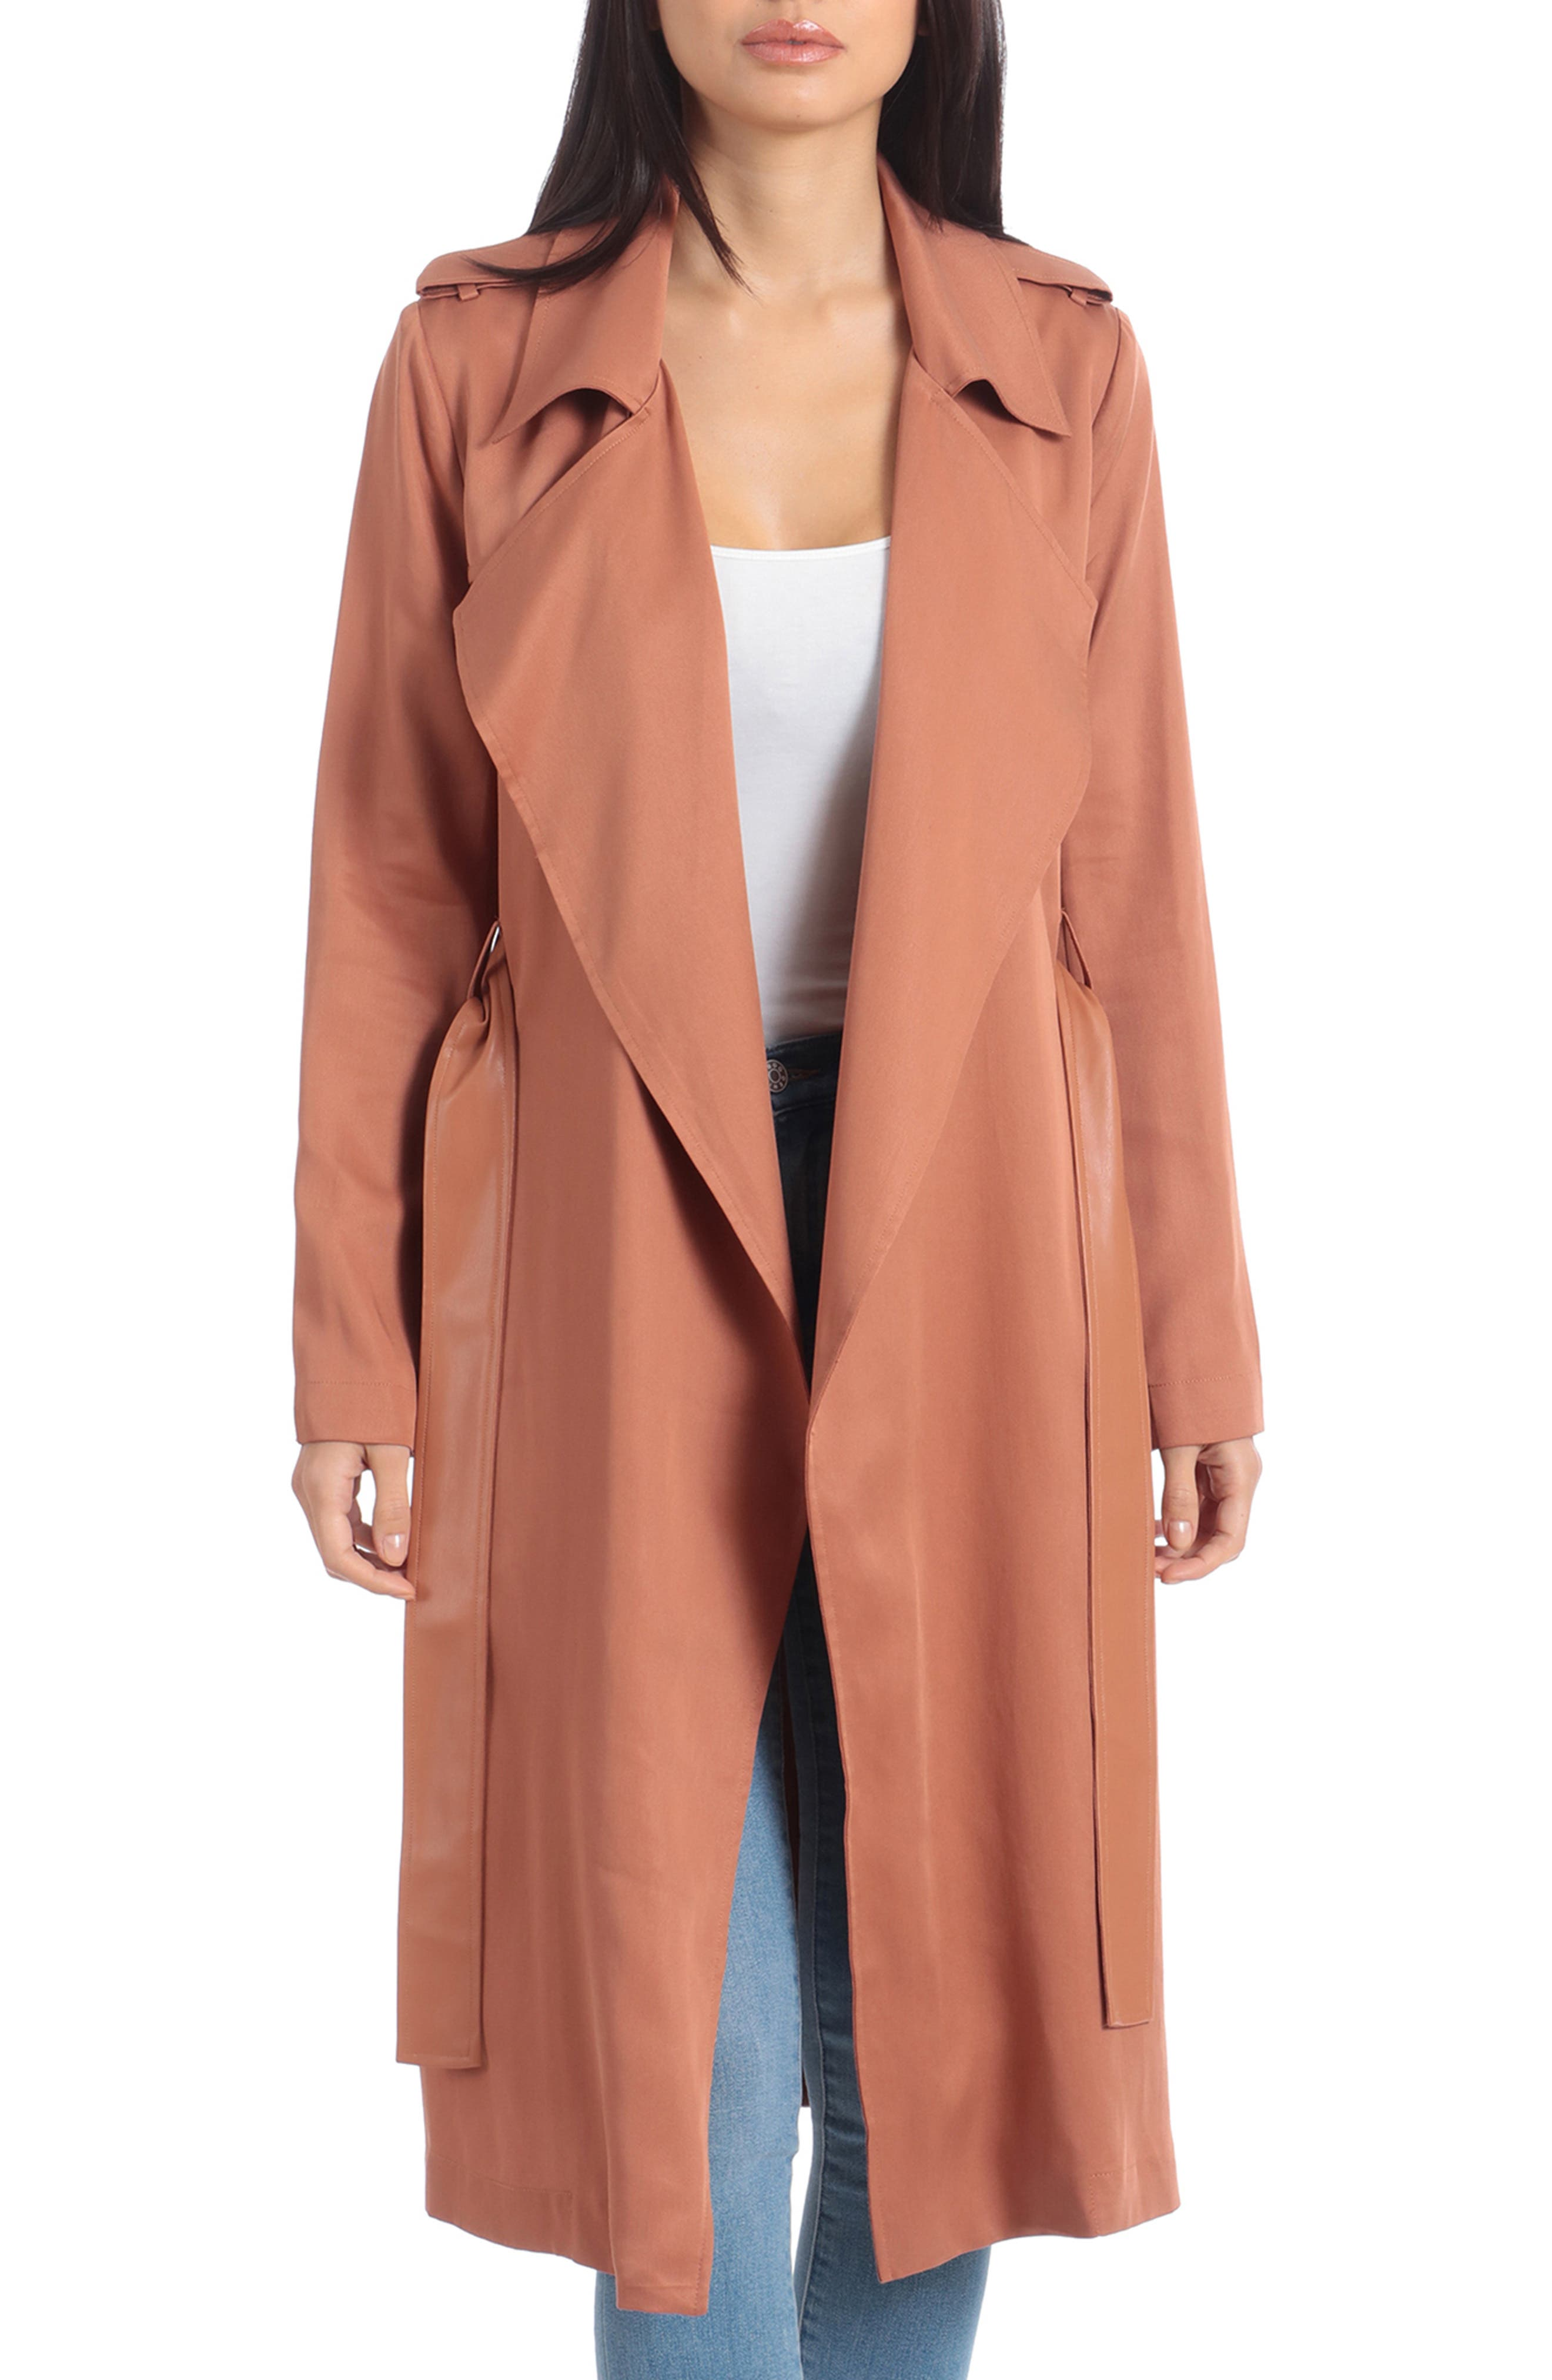 BADGLEY MISCHKA COLLECTION Badgley Mischka Faux Leather Trim Long Trench Coat, Main, color, CEDAR